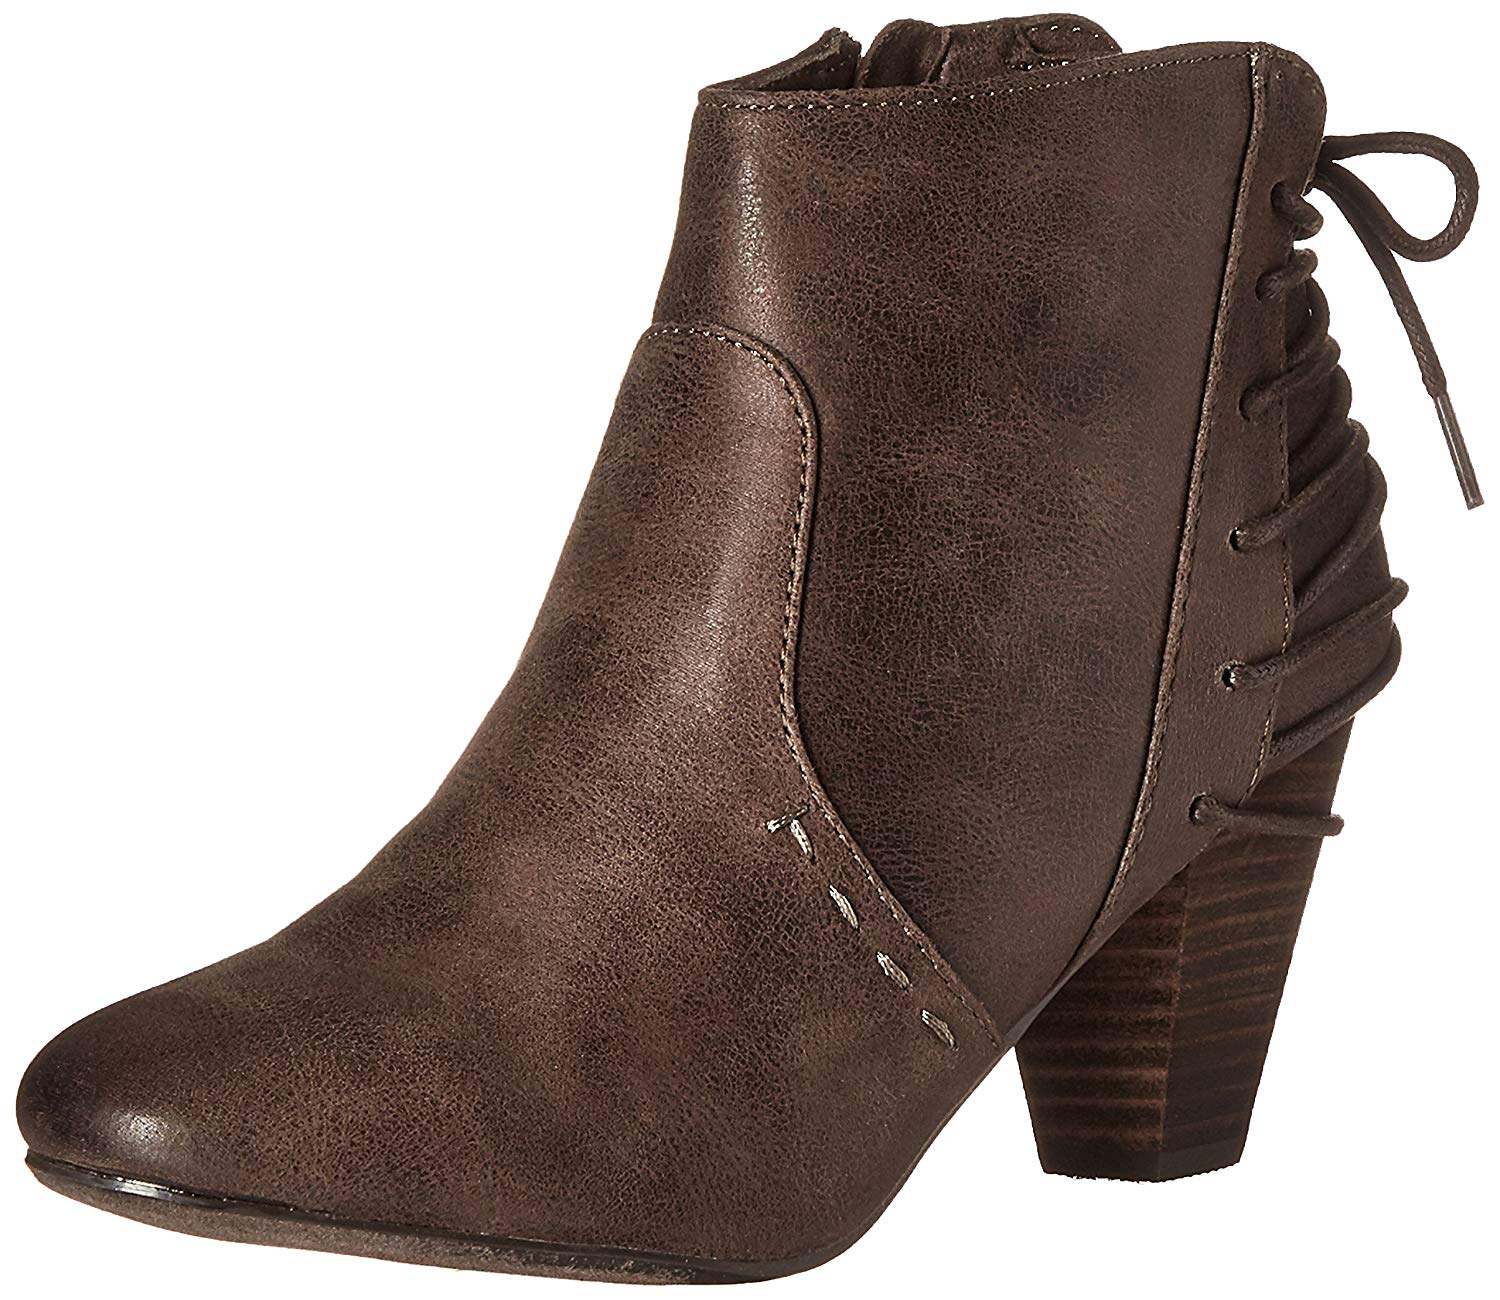 Details about Report Womens Milla Closed Toe Ankle Fashion Boots 4369416ed085